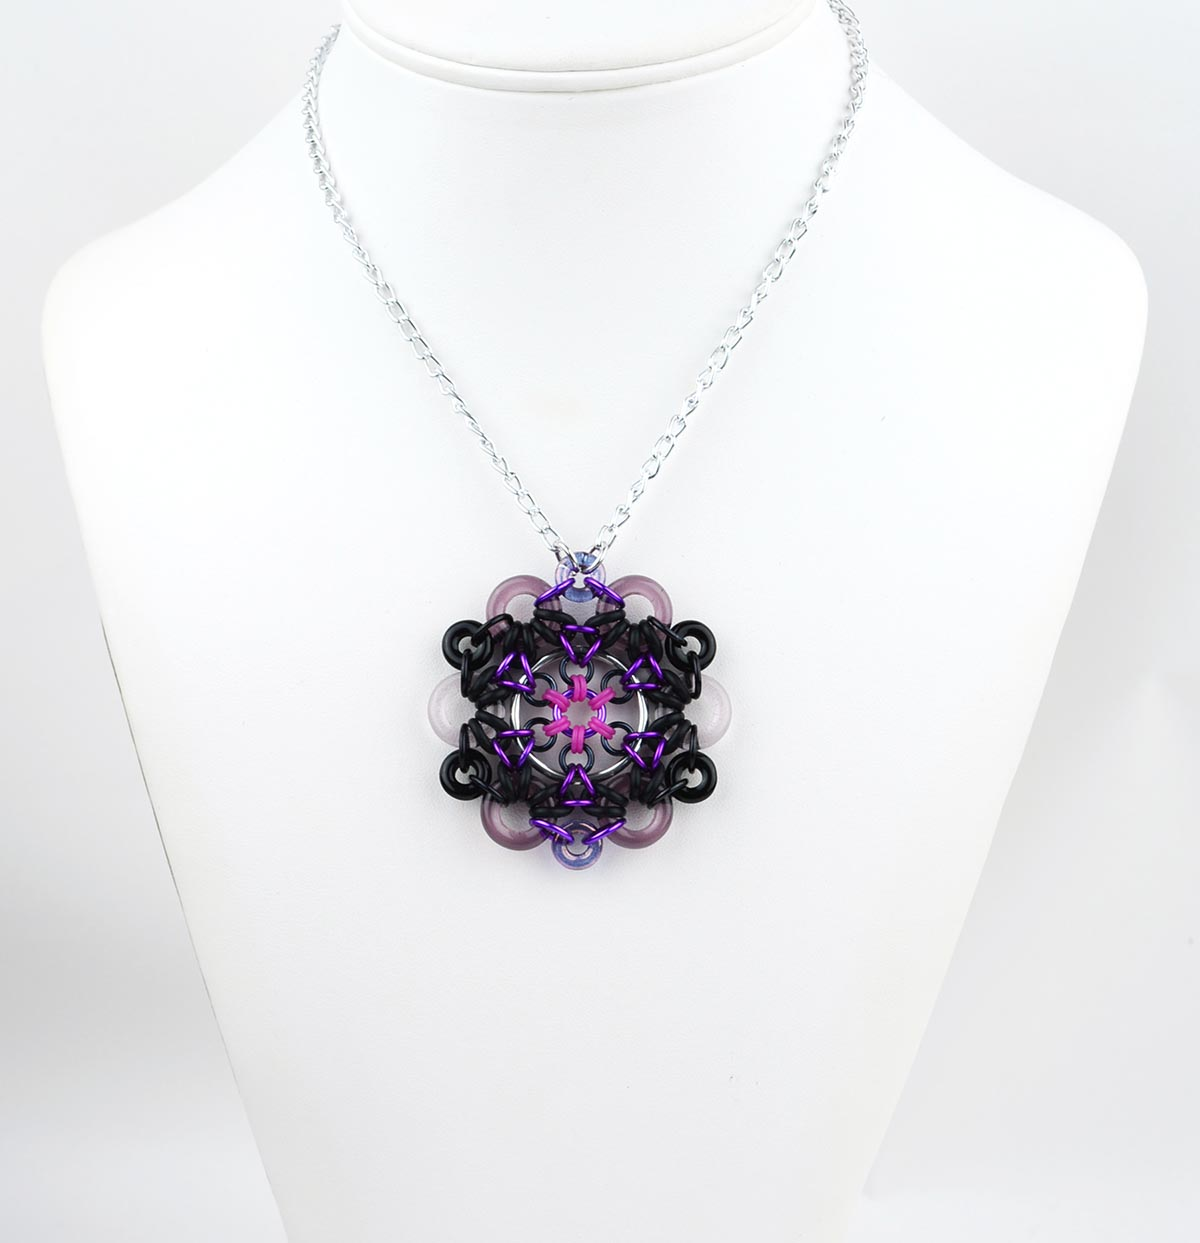 Space Oddity Rubbermaille Pendant in black purple and pink